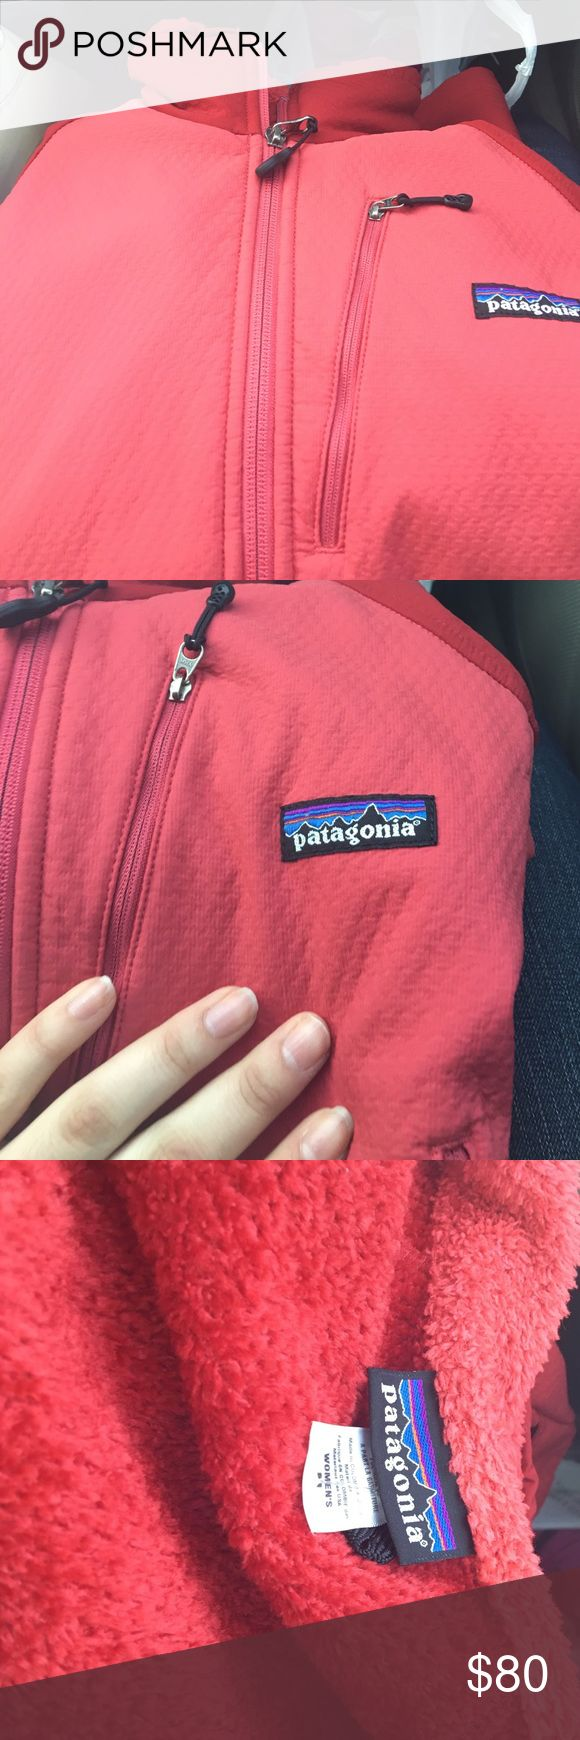 Patagonia red and pink  jacket Red jacket Valentine's Day SALE !!! PRICE Will GO UP AFTER VALENTINES Day!!!!!❤❤❤❤❤❤❤ Patagonia Jackets & Coats